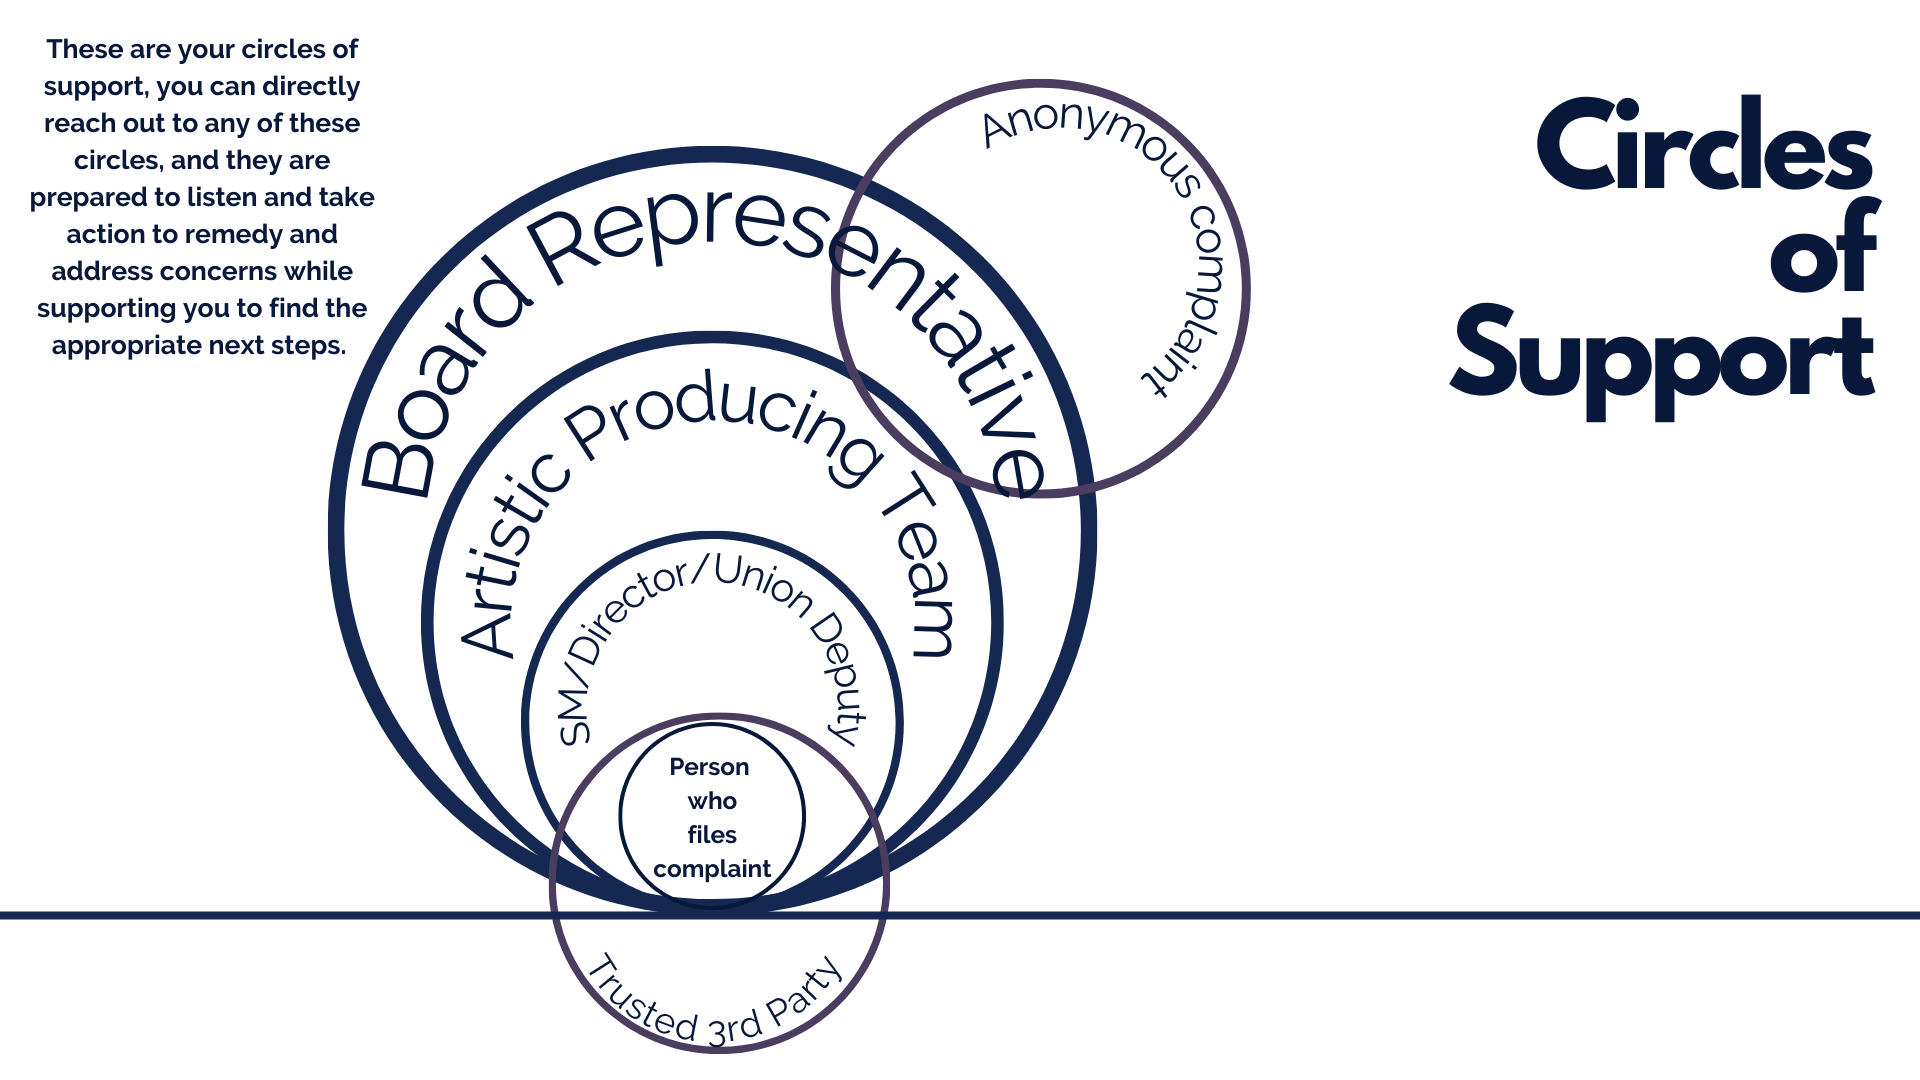 Circles representing a reporting structure, where an individual has multiple supports in terms of reporting incidents. The person who files the complaint is at the center and is surrounded by SM/Director/Union Rep., then the Artistic Producing Team, Board representative and separately is the trusted third party. These are your circles of support, you can directly reach out to any of theses circles and they are prepared to listen, and take action to remedy and address concerns, questions and support you to find appropriate next steps.